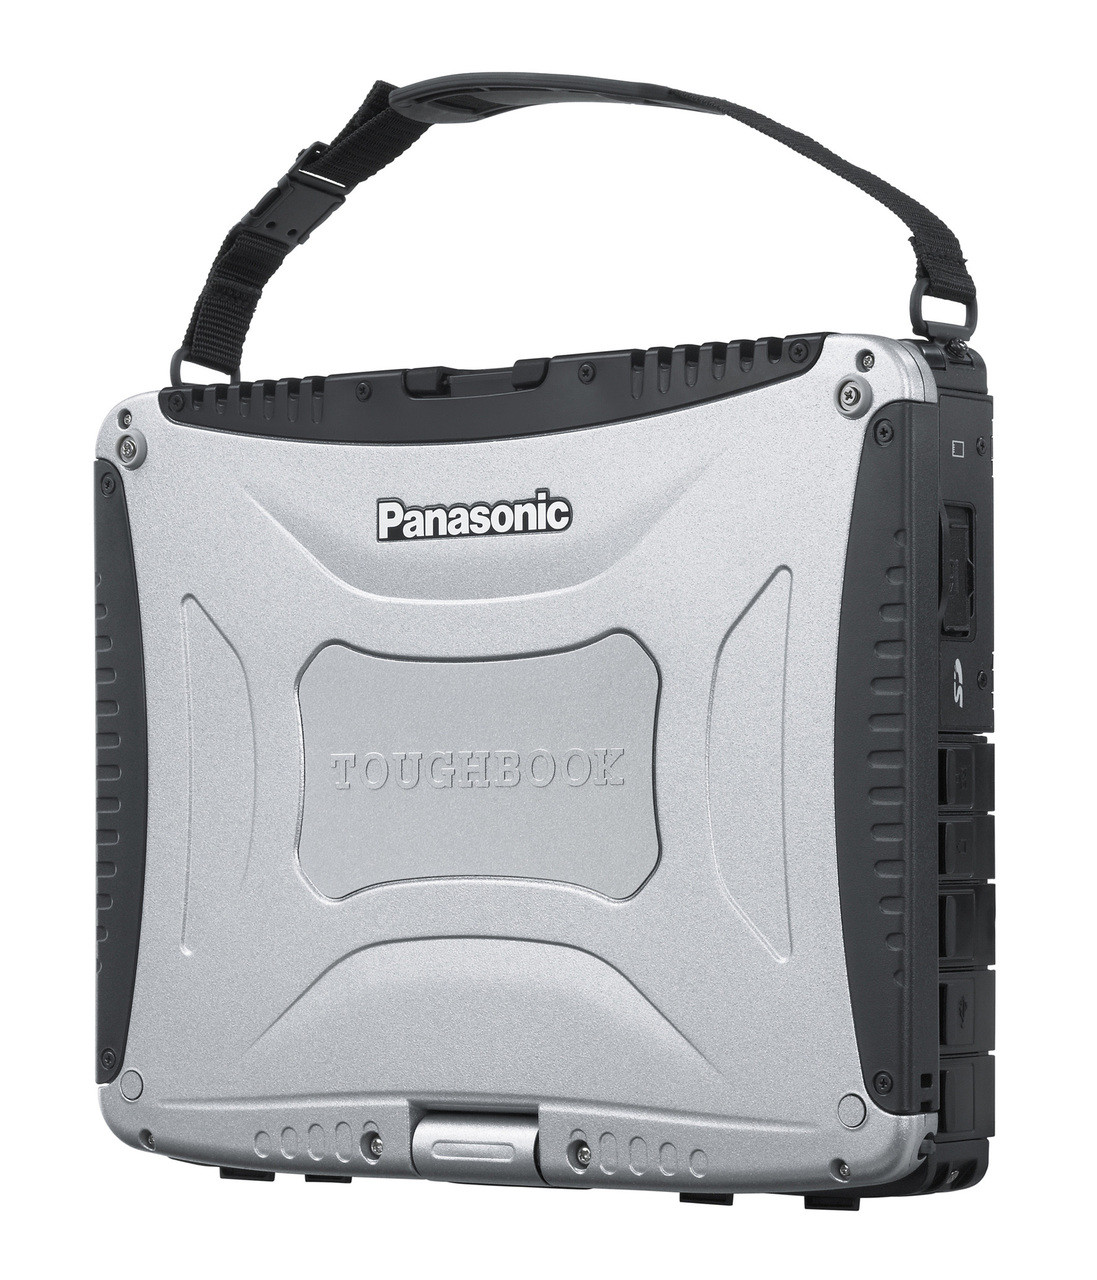 Panasonic ToughBook CF-19KHRAX2B Compact